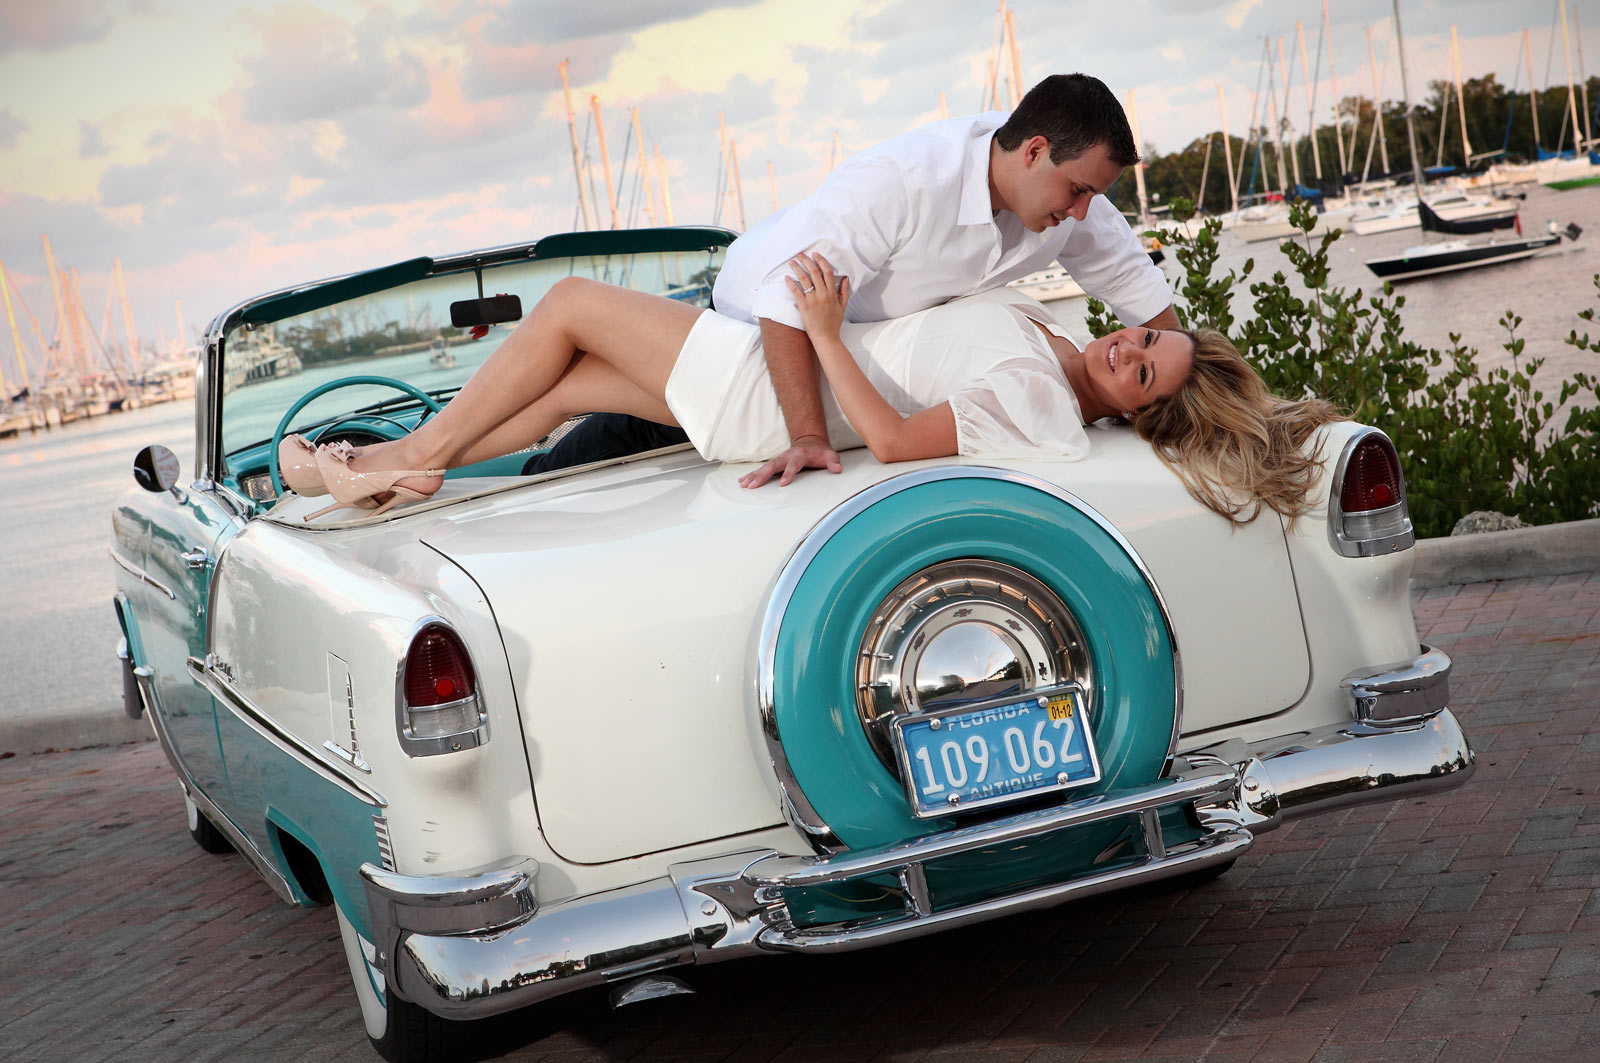 Romantic Engagement Session on Top of White and Blue Classic Car